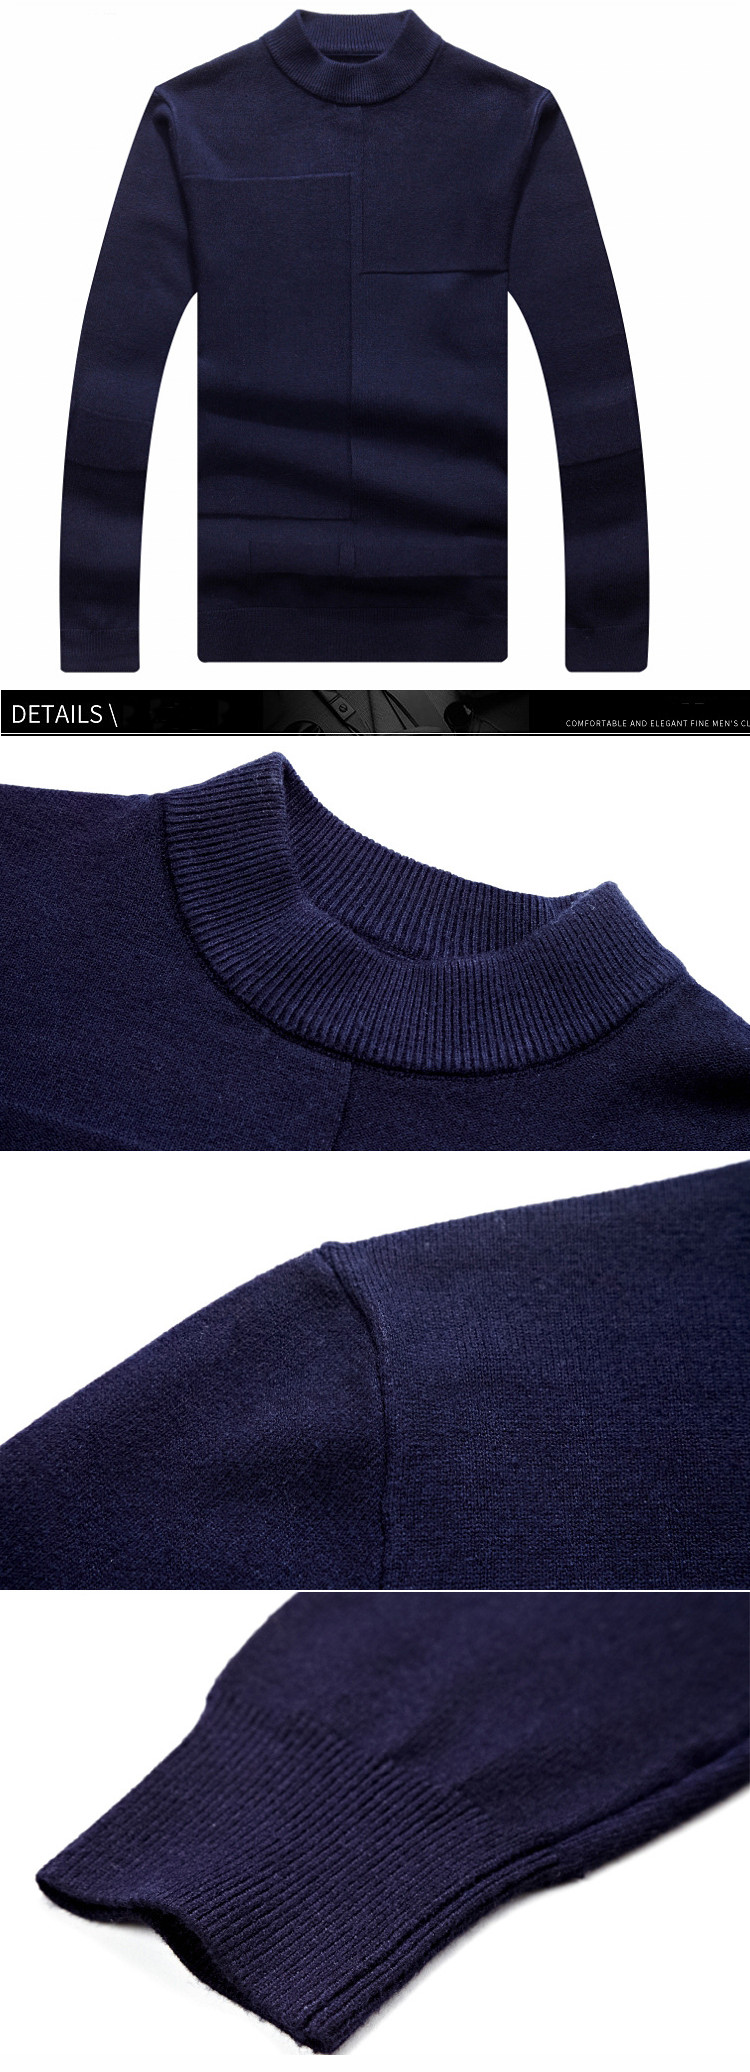 Men's Fashion Semi Solid Color Warm Knitwears